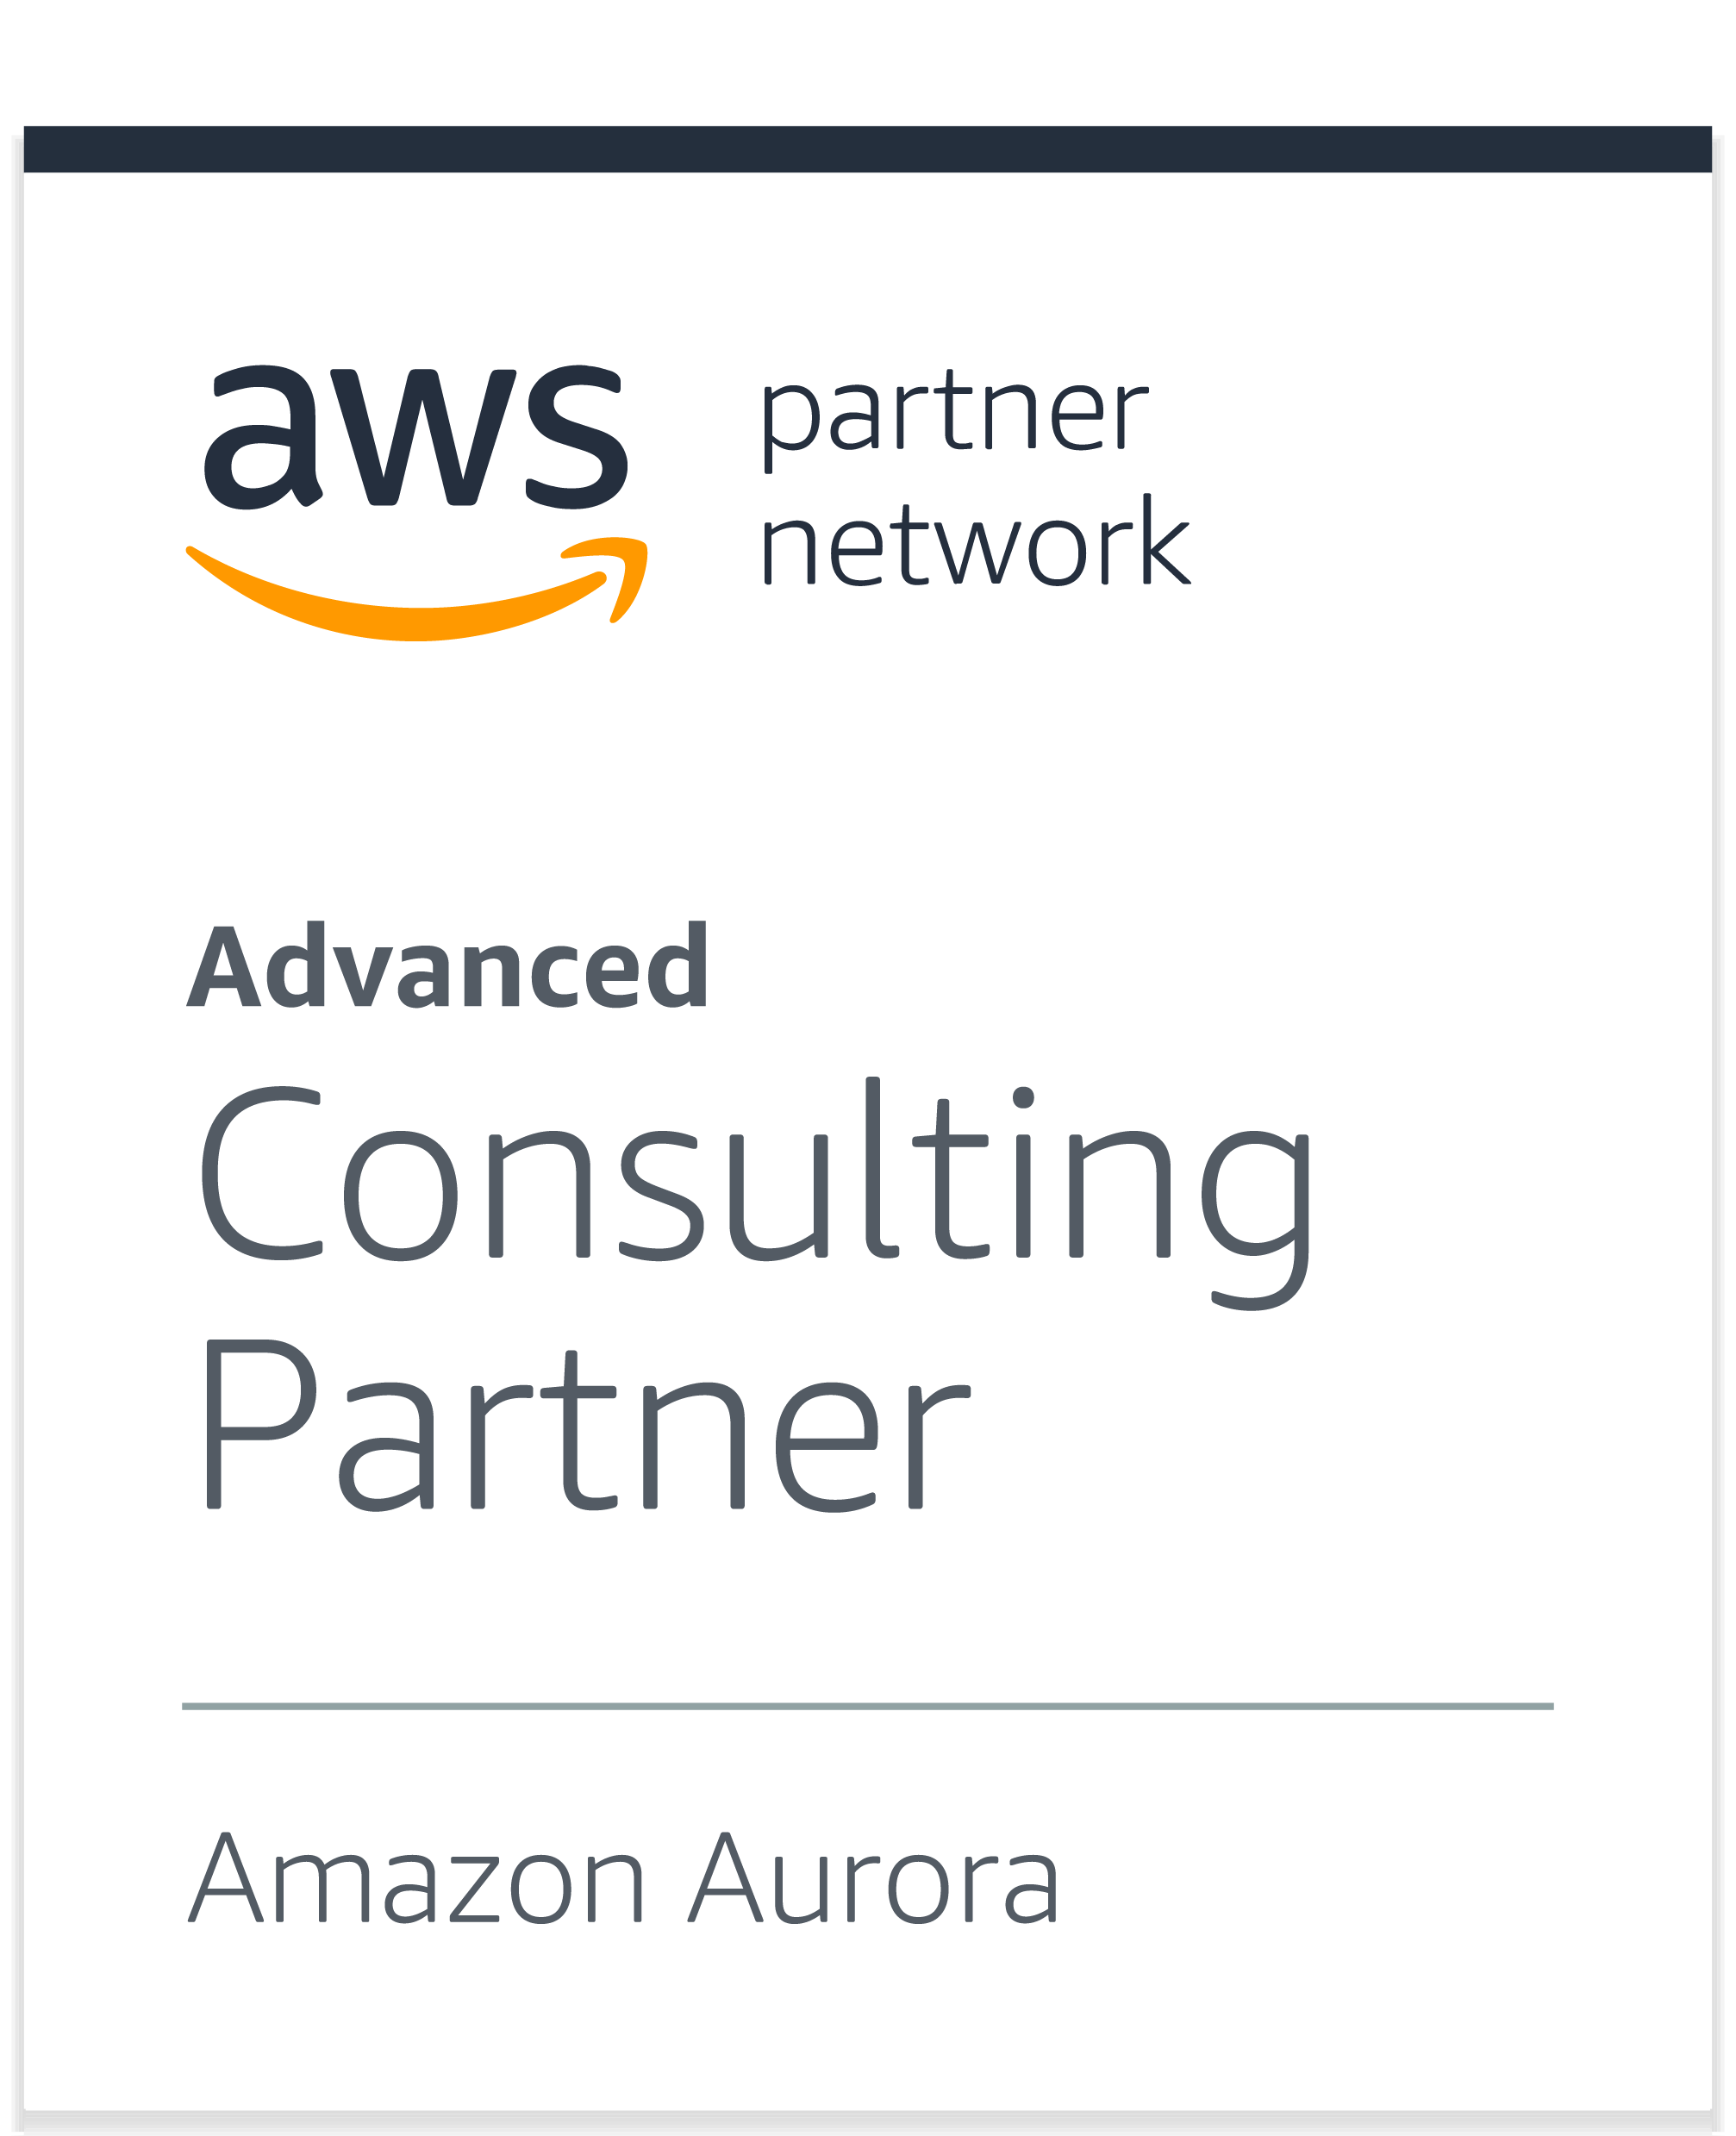 Advanced Consulting Partner of AWS